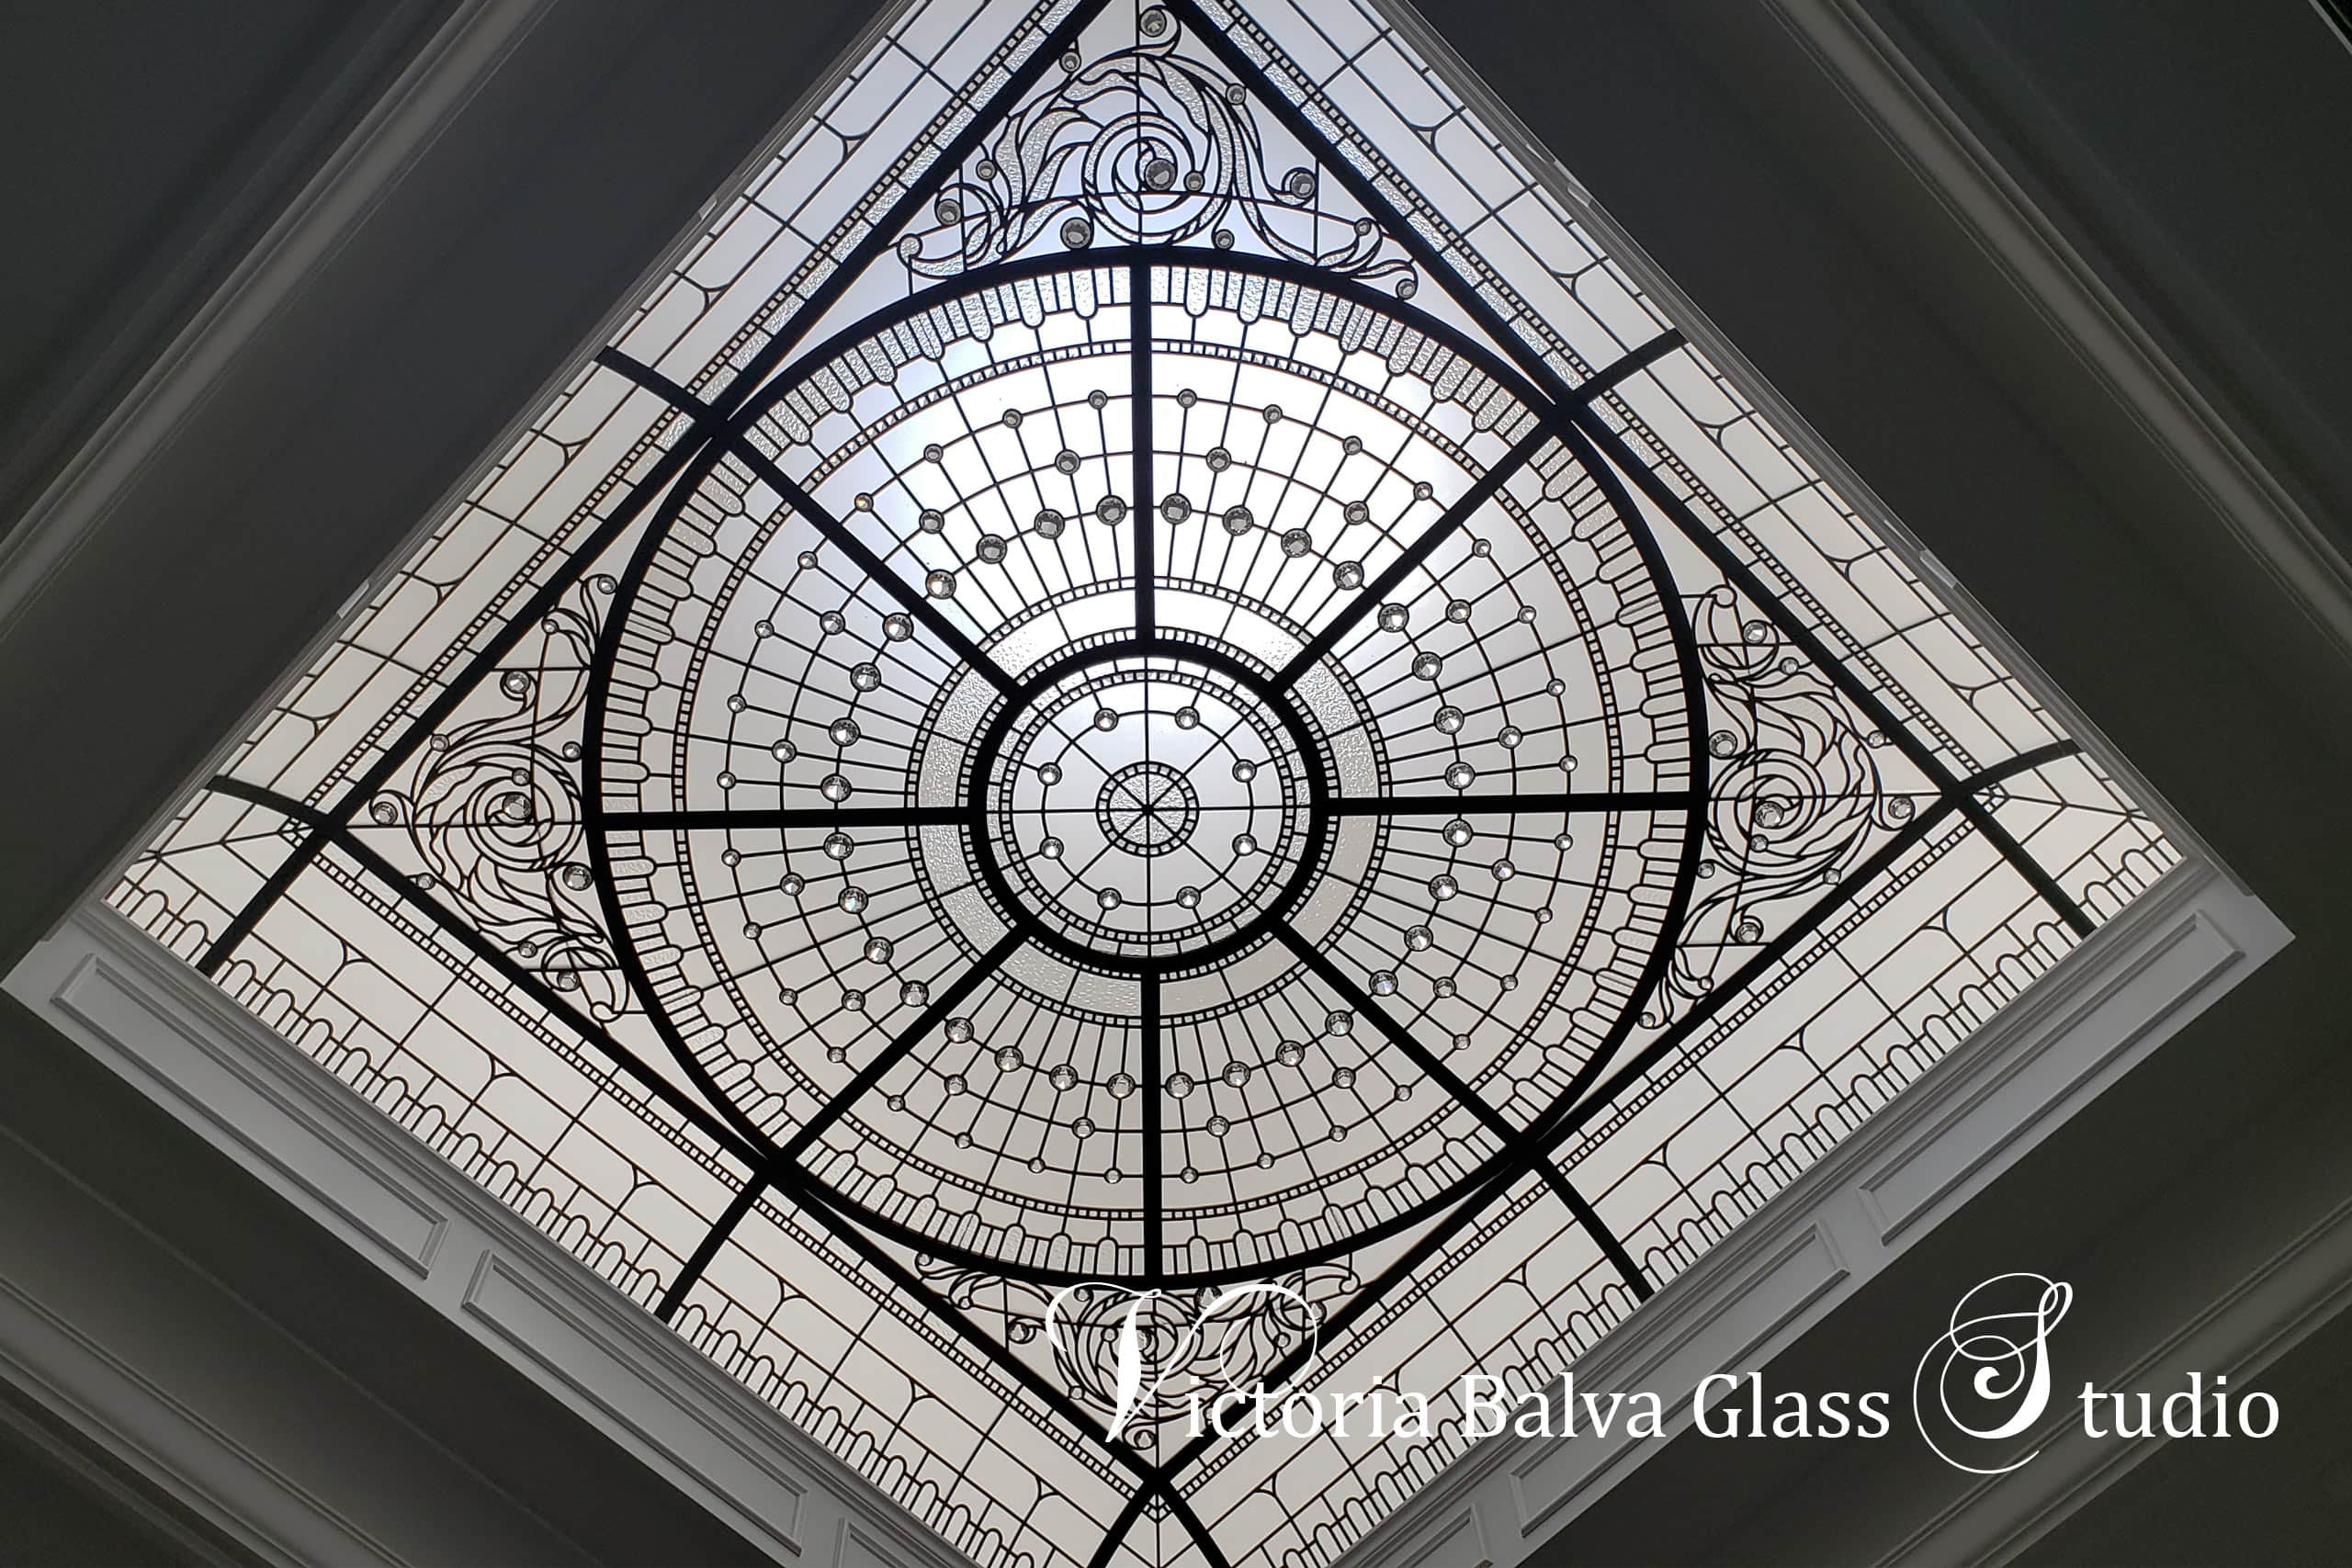 Monochromatic clear architectural leaded glass decorative skylight ceiling with barrel raised borders, accent crystal diamonds & beveled glass for the interior design of custom built luxury residence. Classically modern leaded glass skylight designed by architectural glass artist Victoria Balva